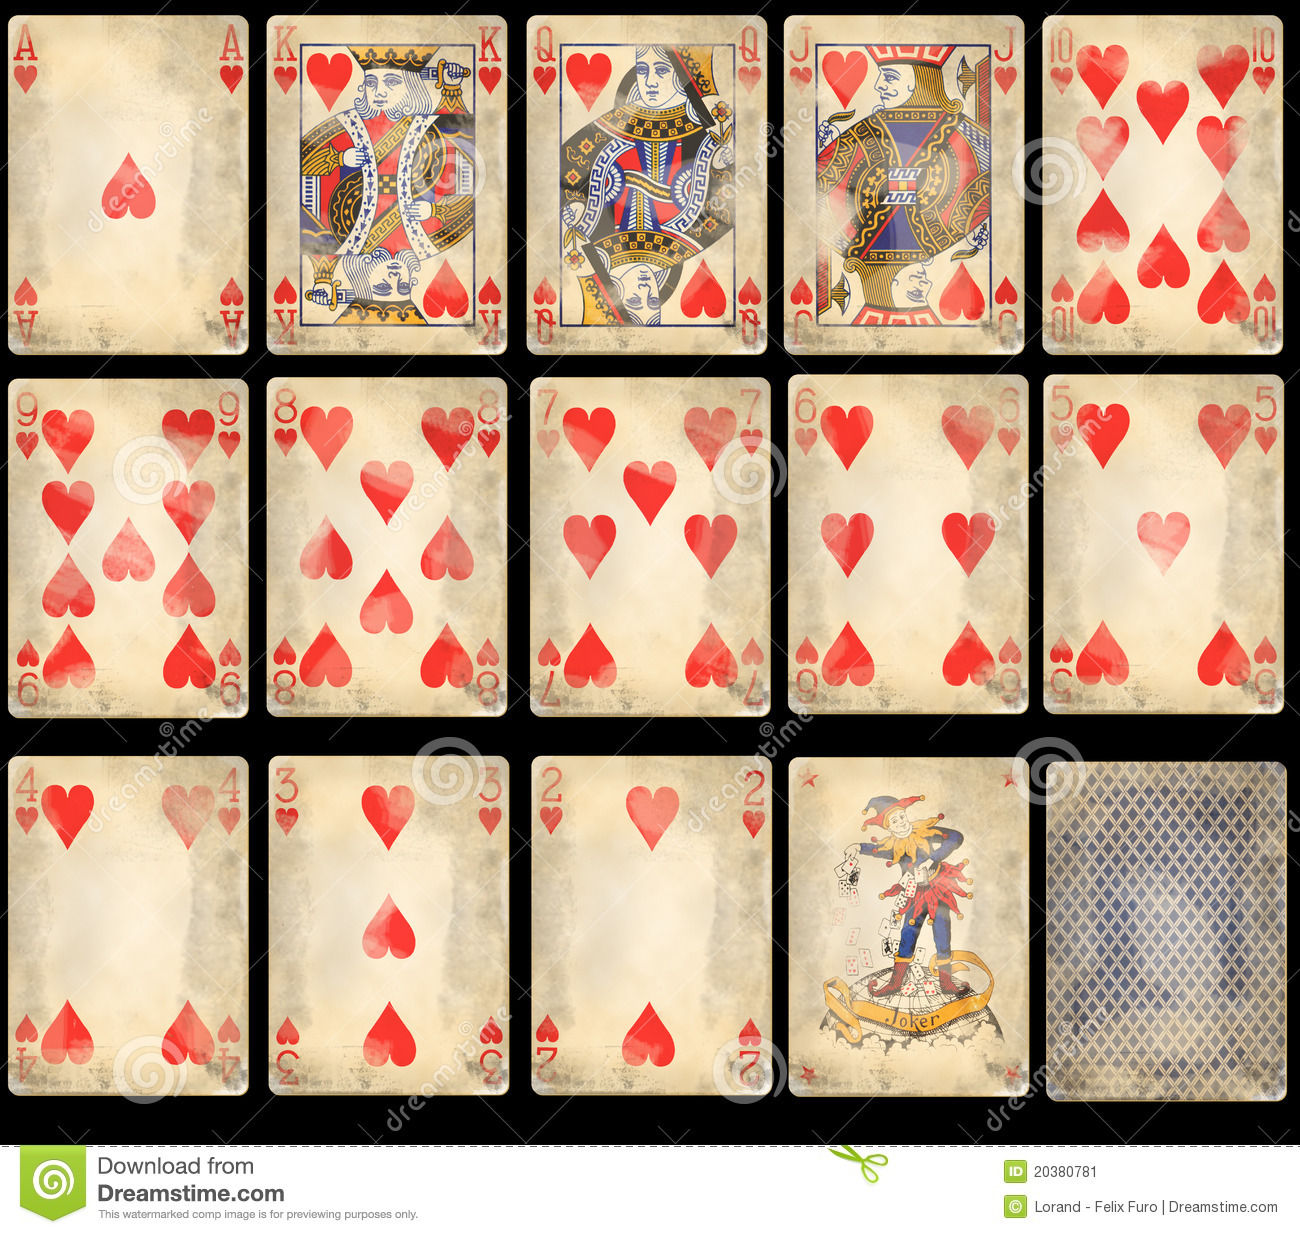 Old Poker Playing Cards - Hearts